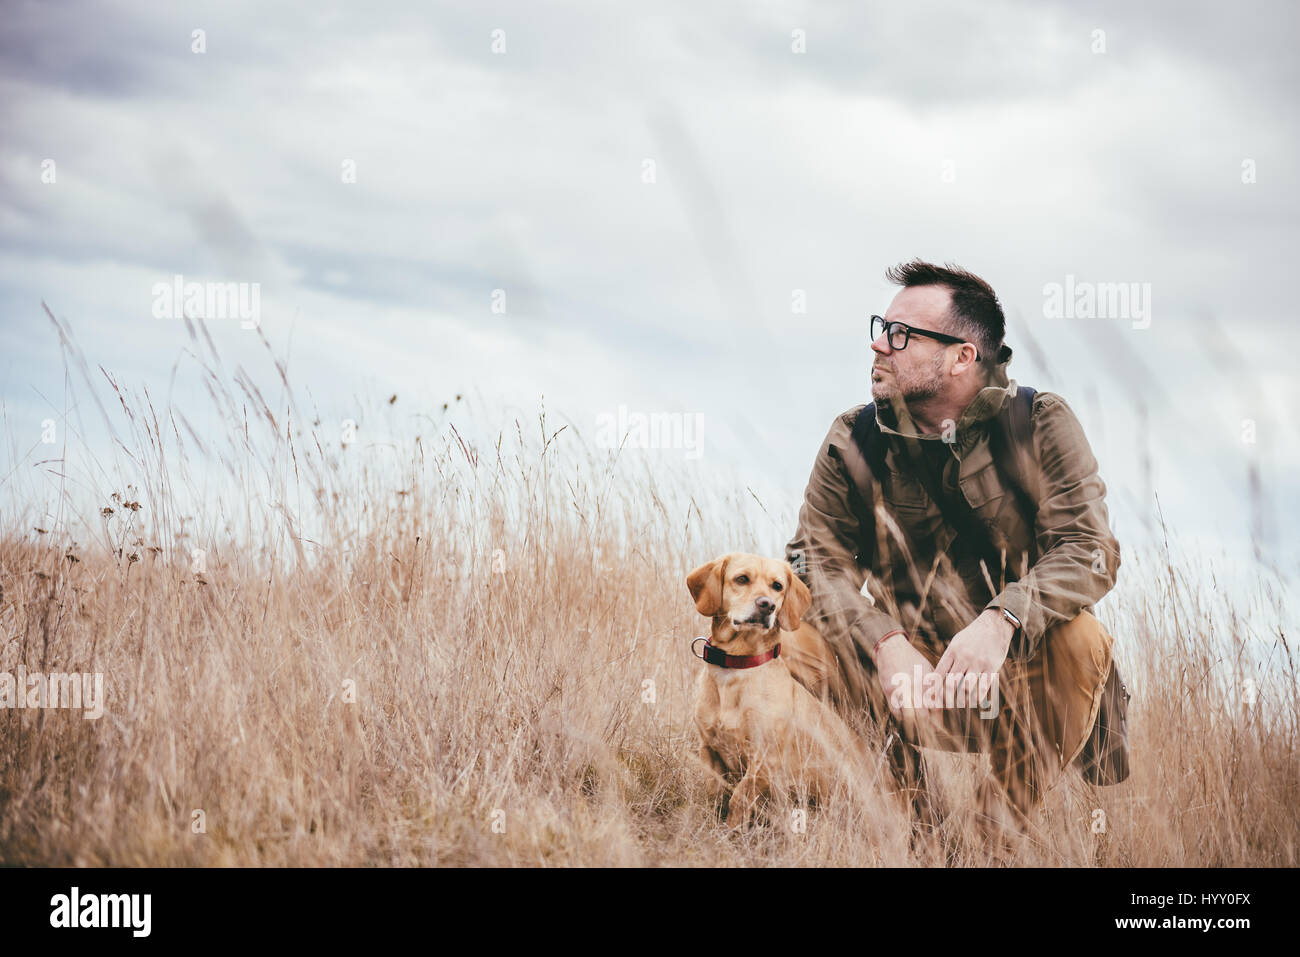 Man and dog resting in grassland - Stock Image